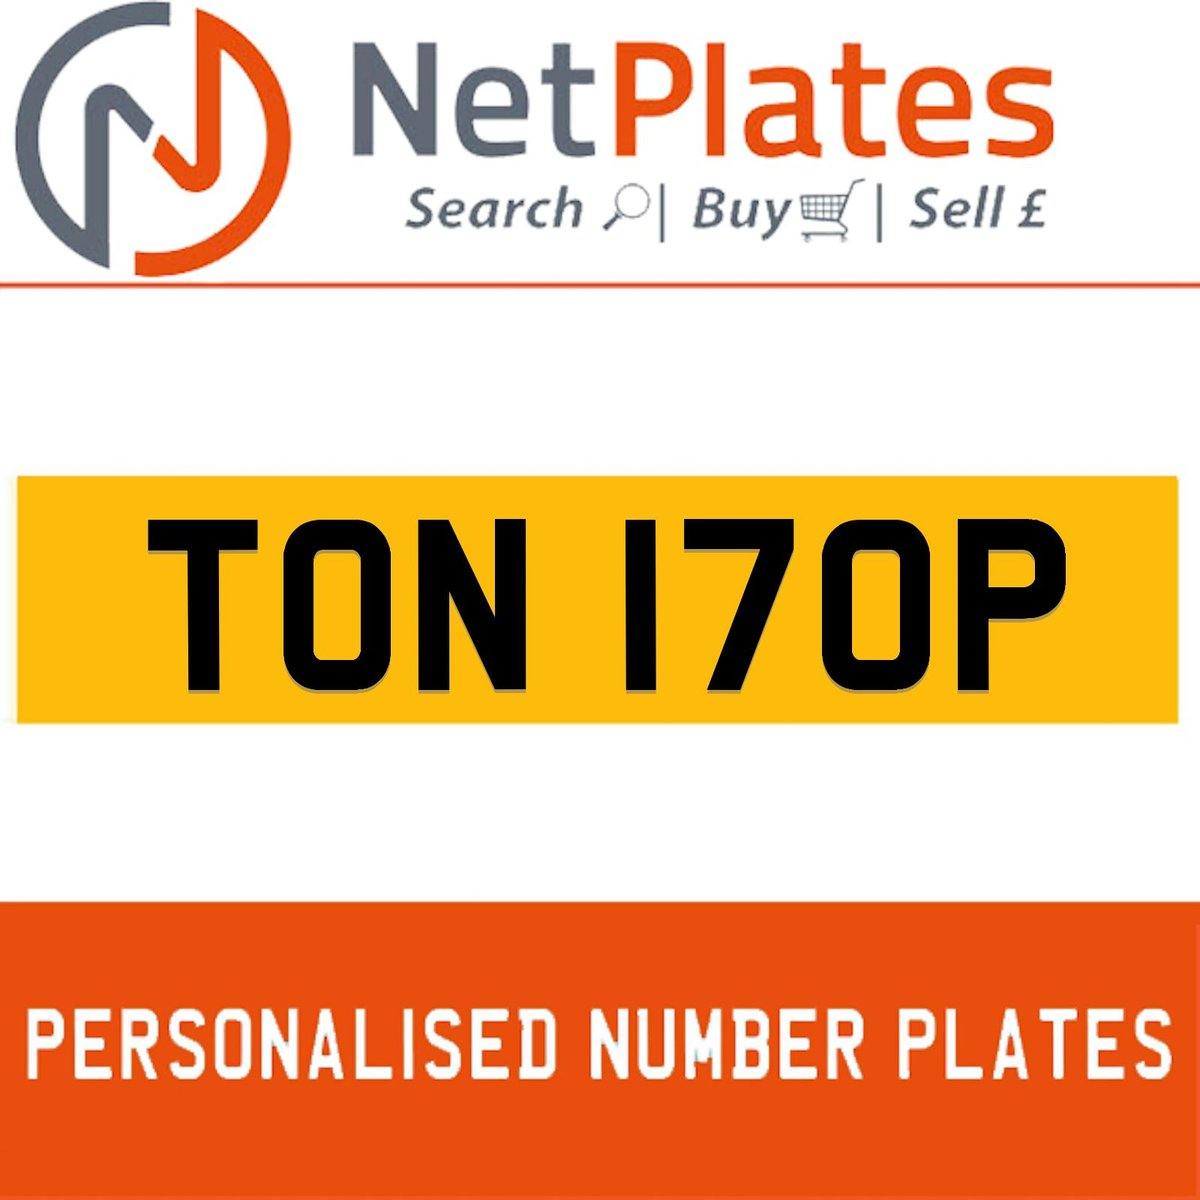 TON 170P PERSONALISED PRIVATE CHERISHED DVLA NUMBER PLATE For Sale (picture 1 of 5)